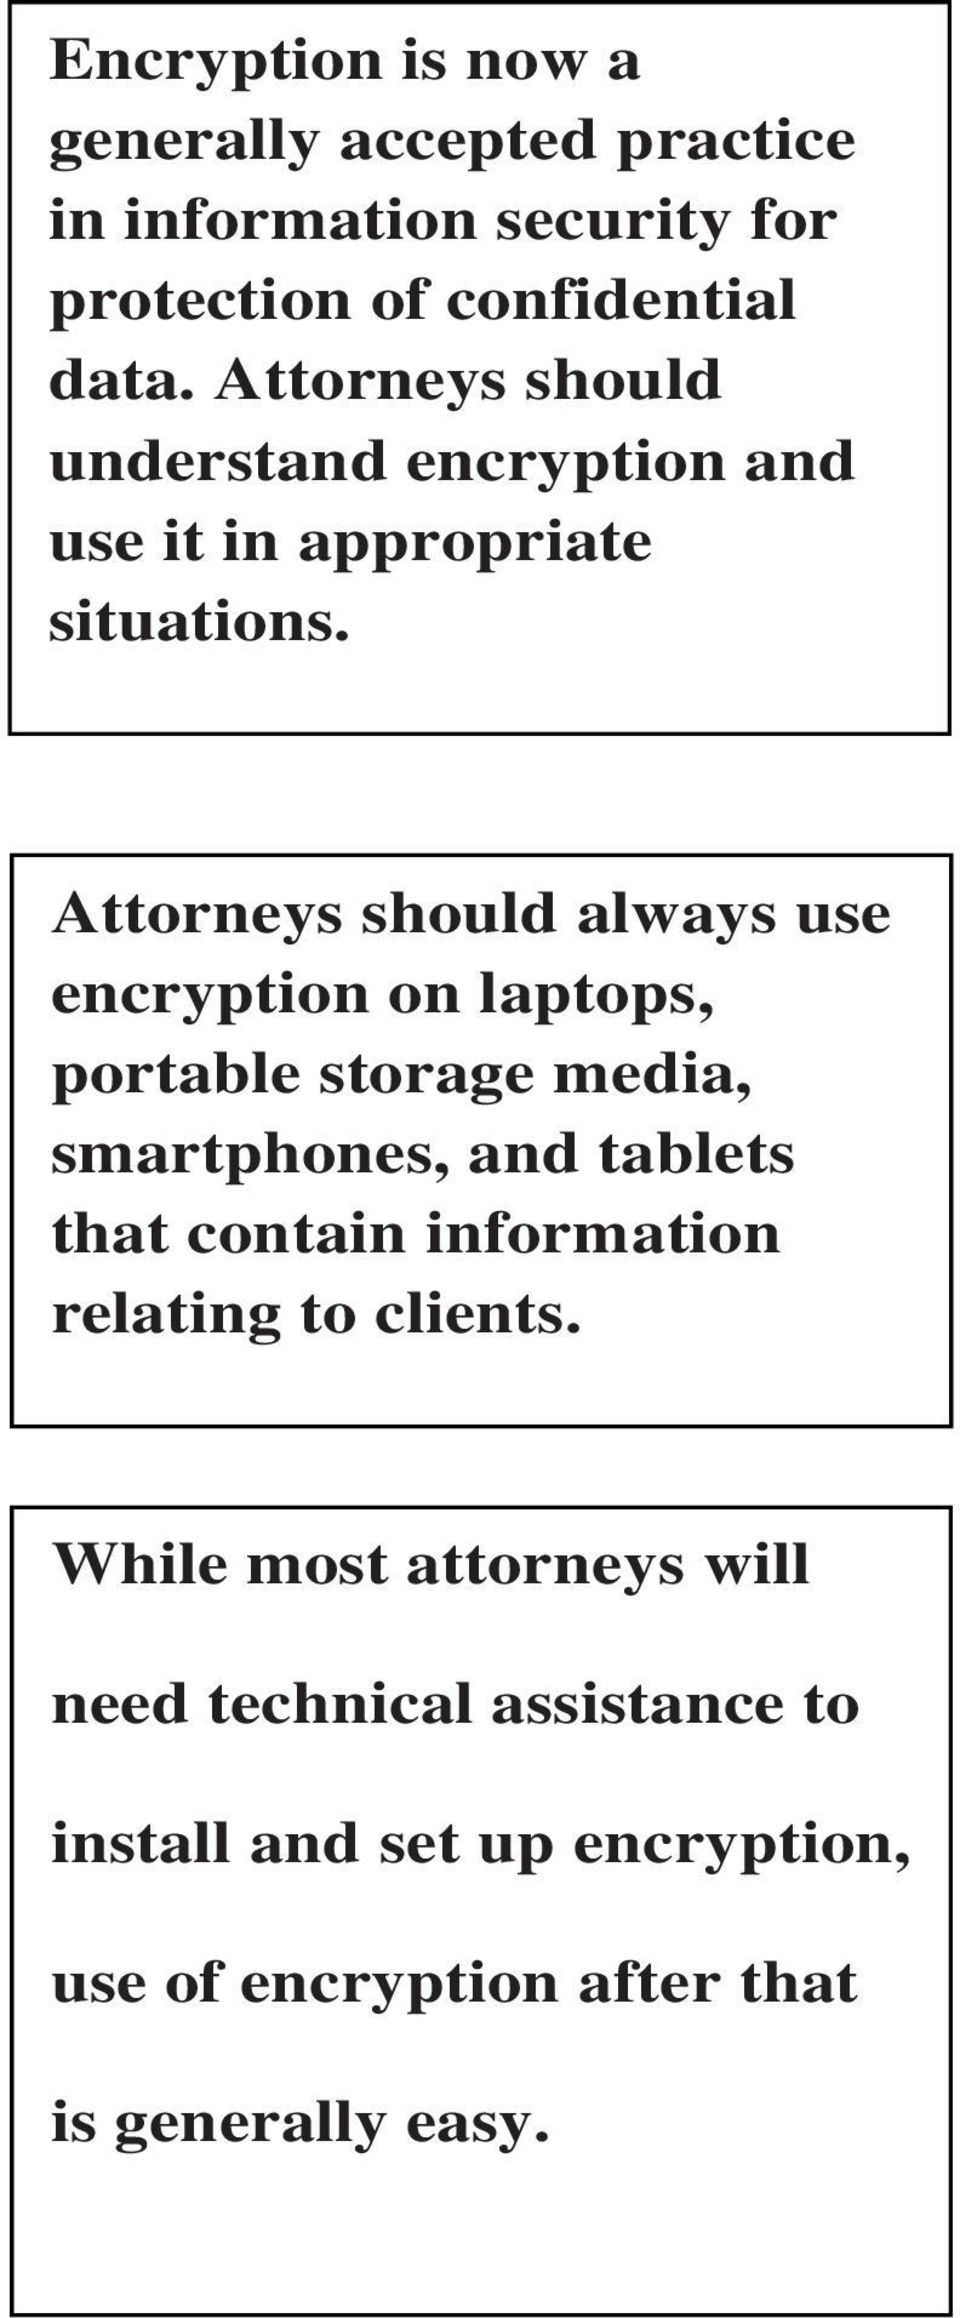 Attorneys should always use encryption on laptops, portable storage media, smartphones, and tablets that contain